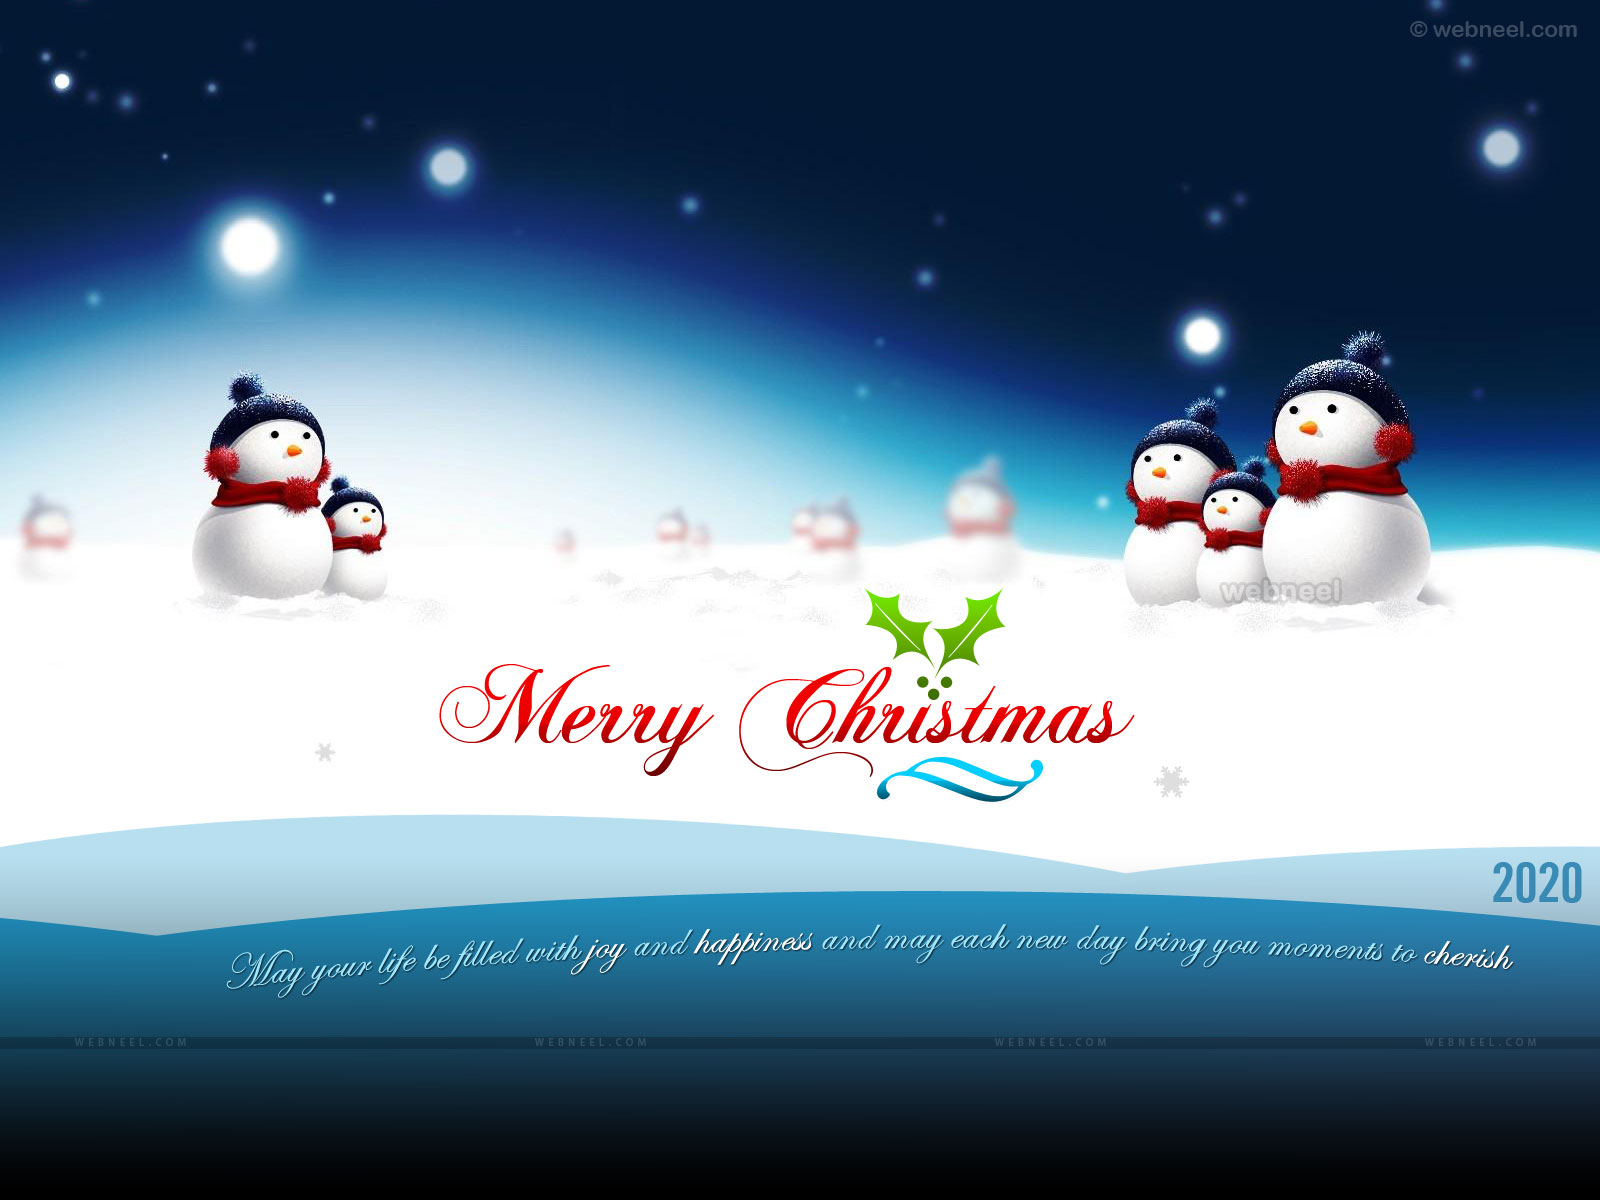 50 Beautiful Christmas and Winter Wallpapers for your desktop 1600x1200